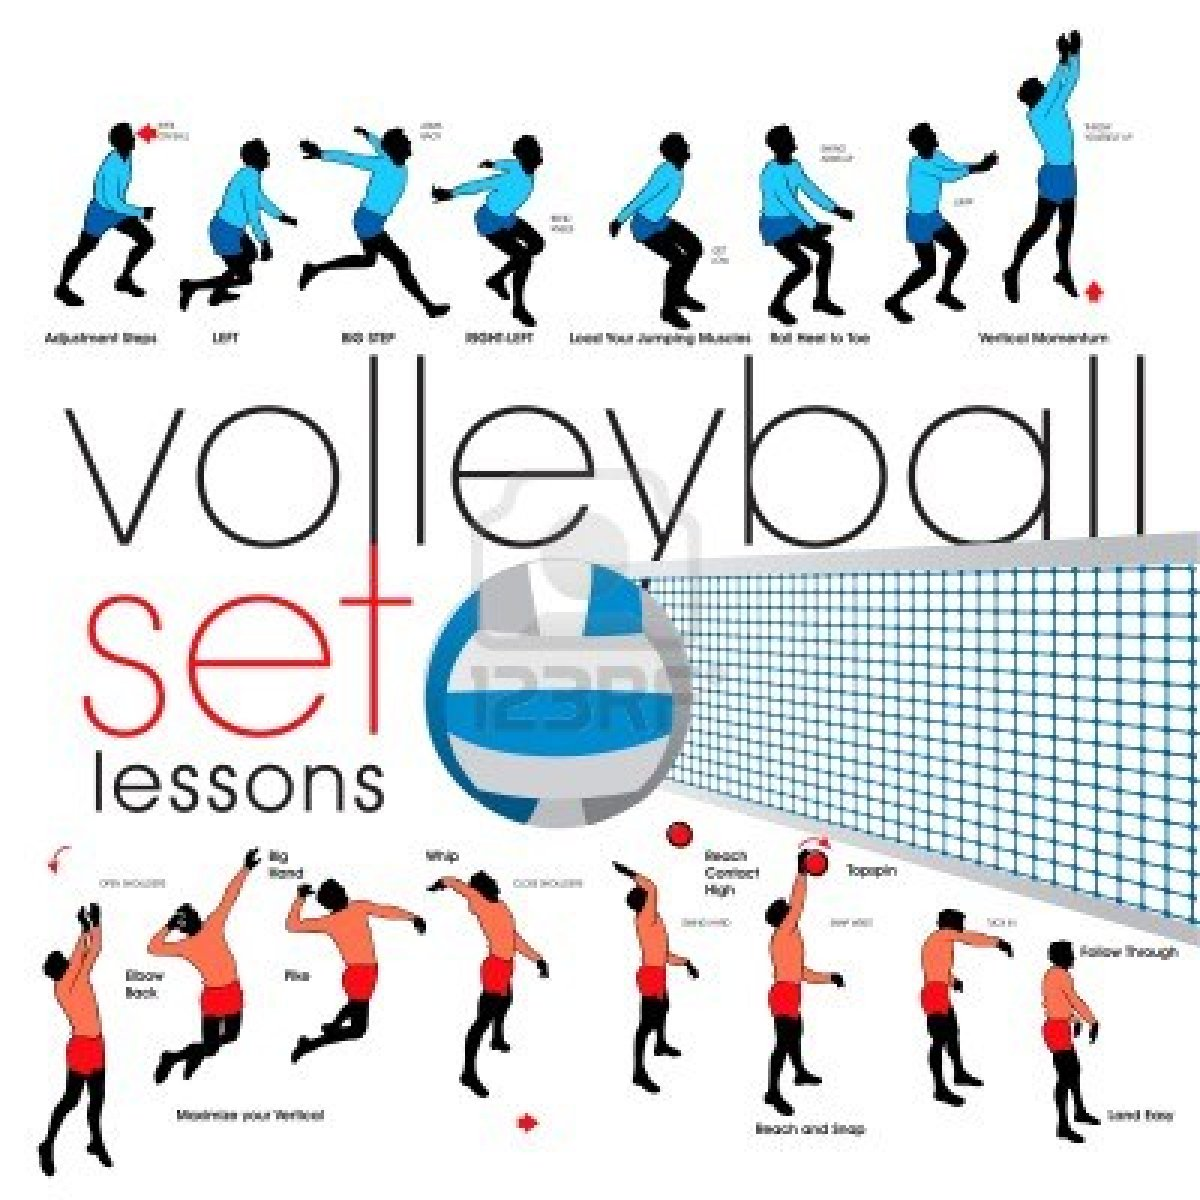 volleyball setting clipart - photo #24